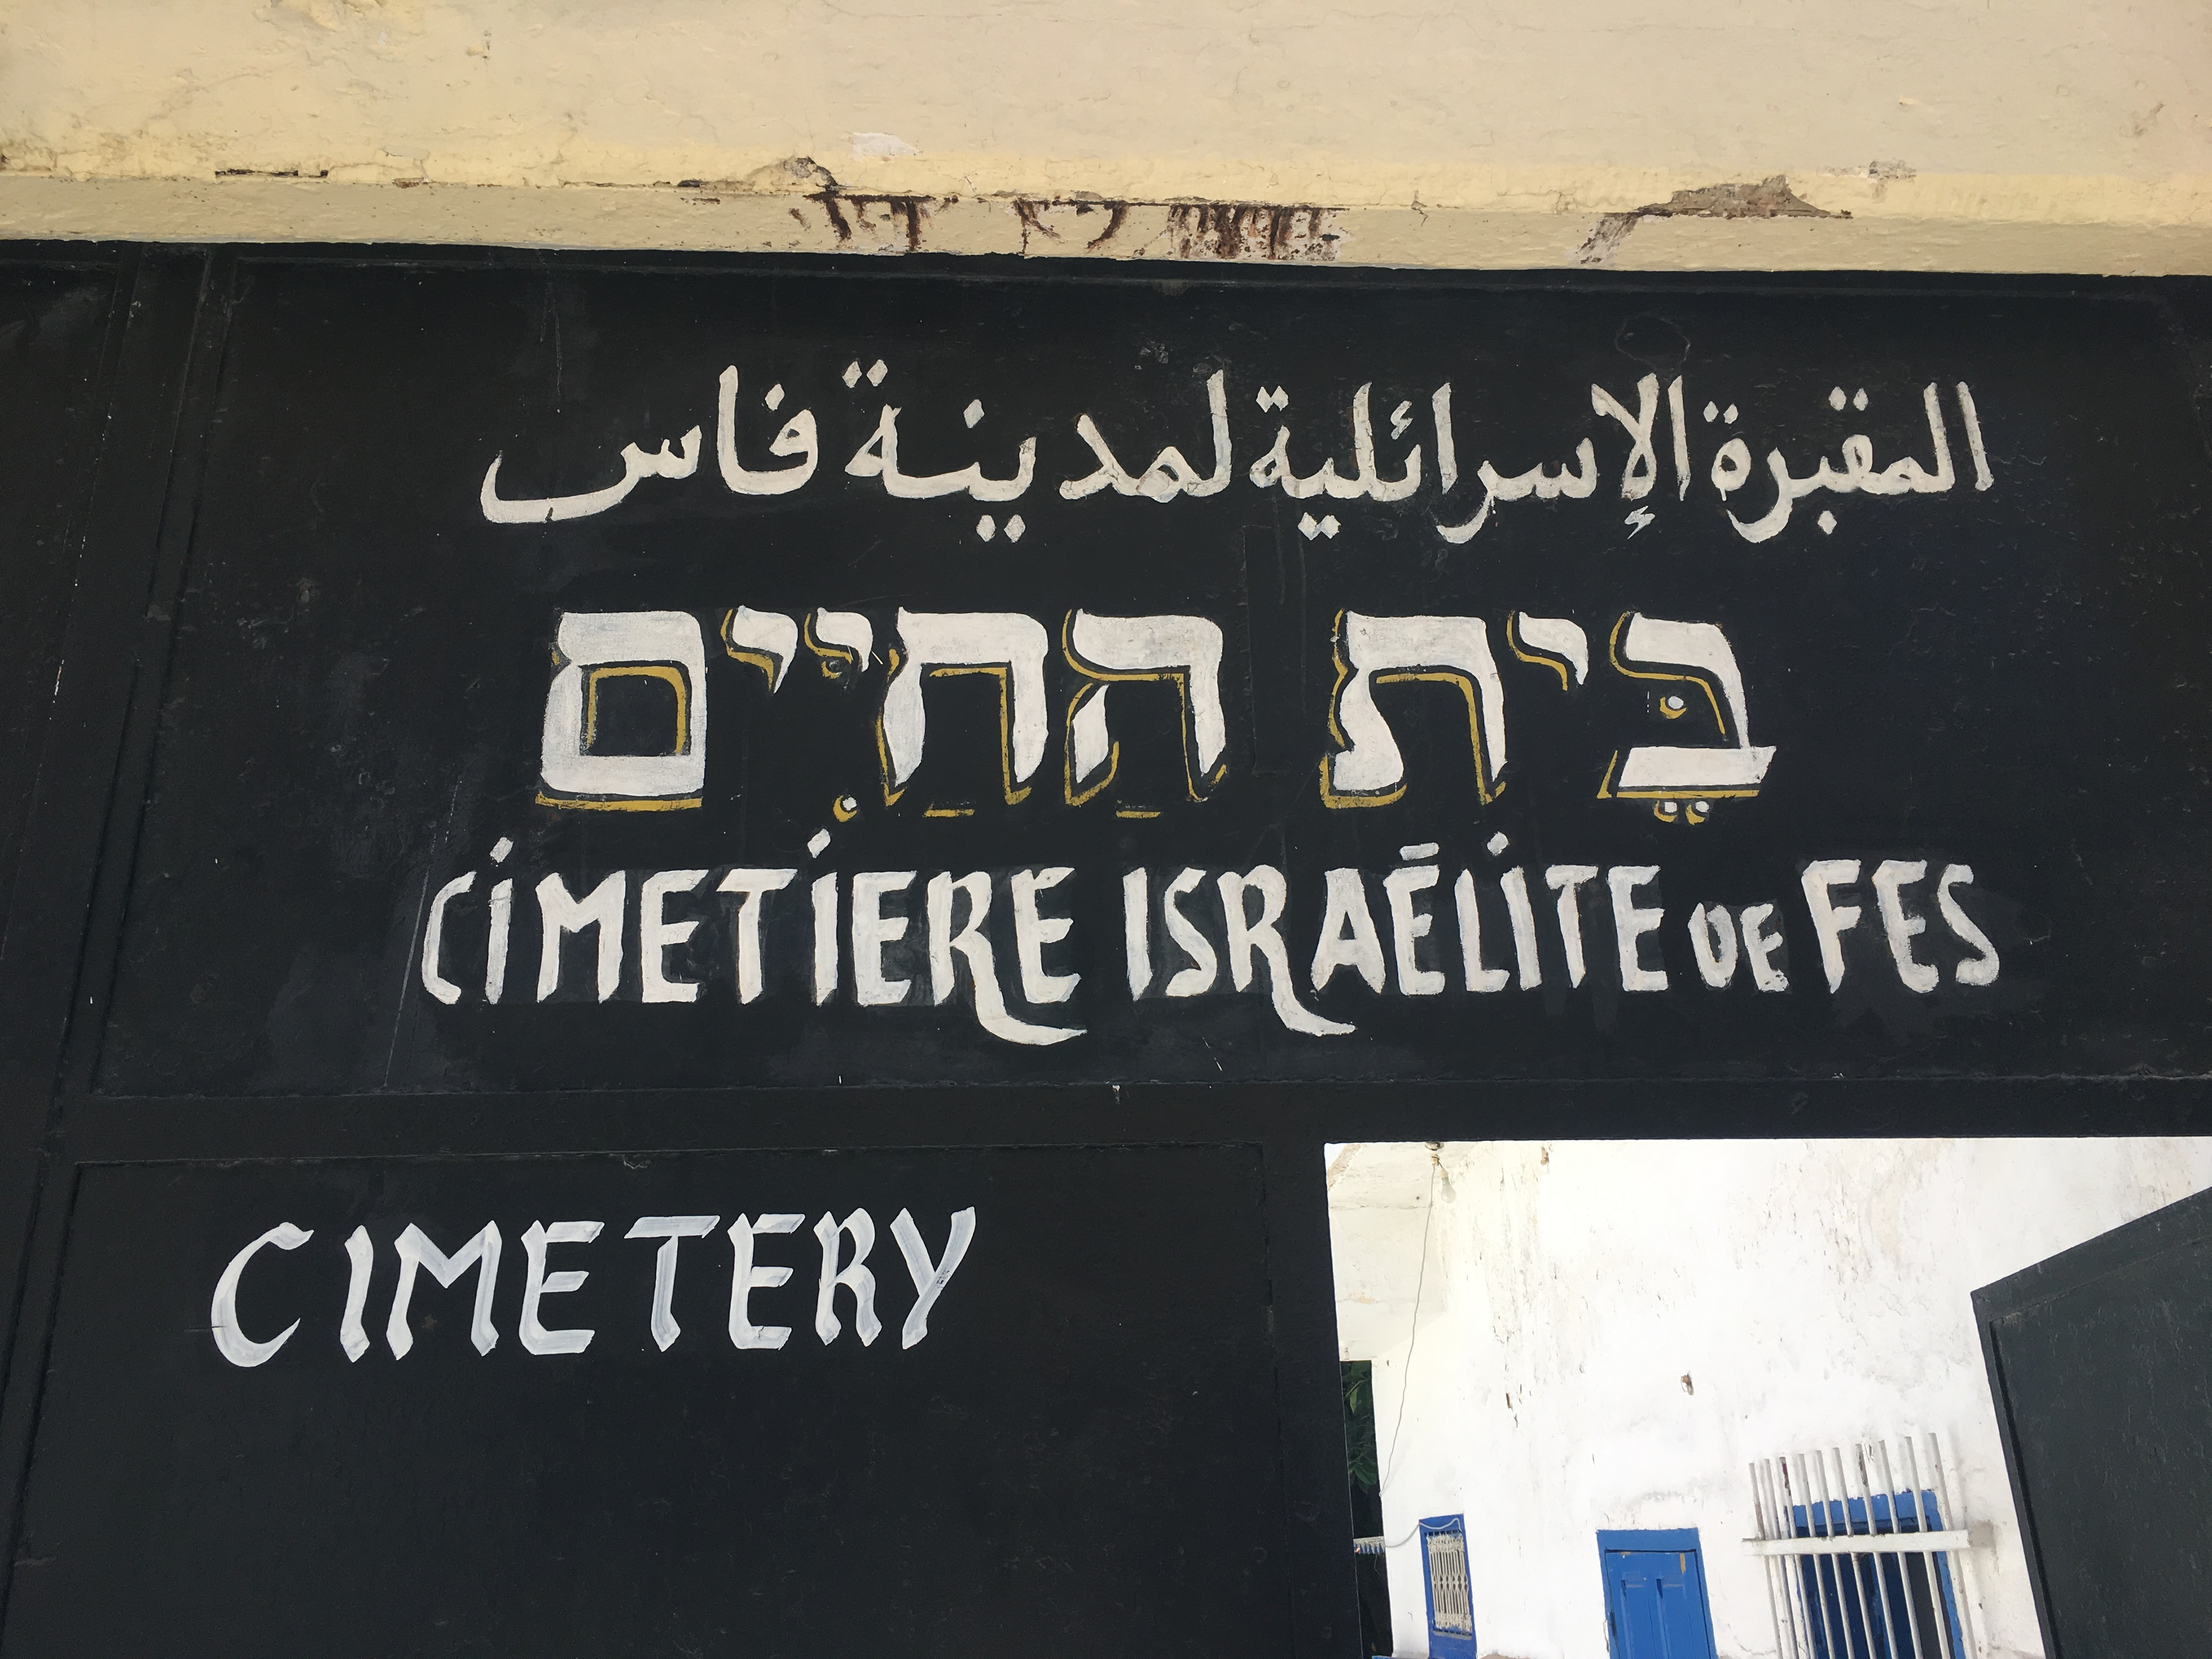 The entrance to the Jewish cemetery in Fez